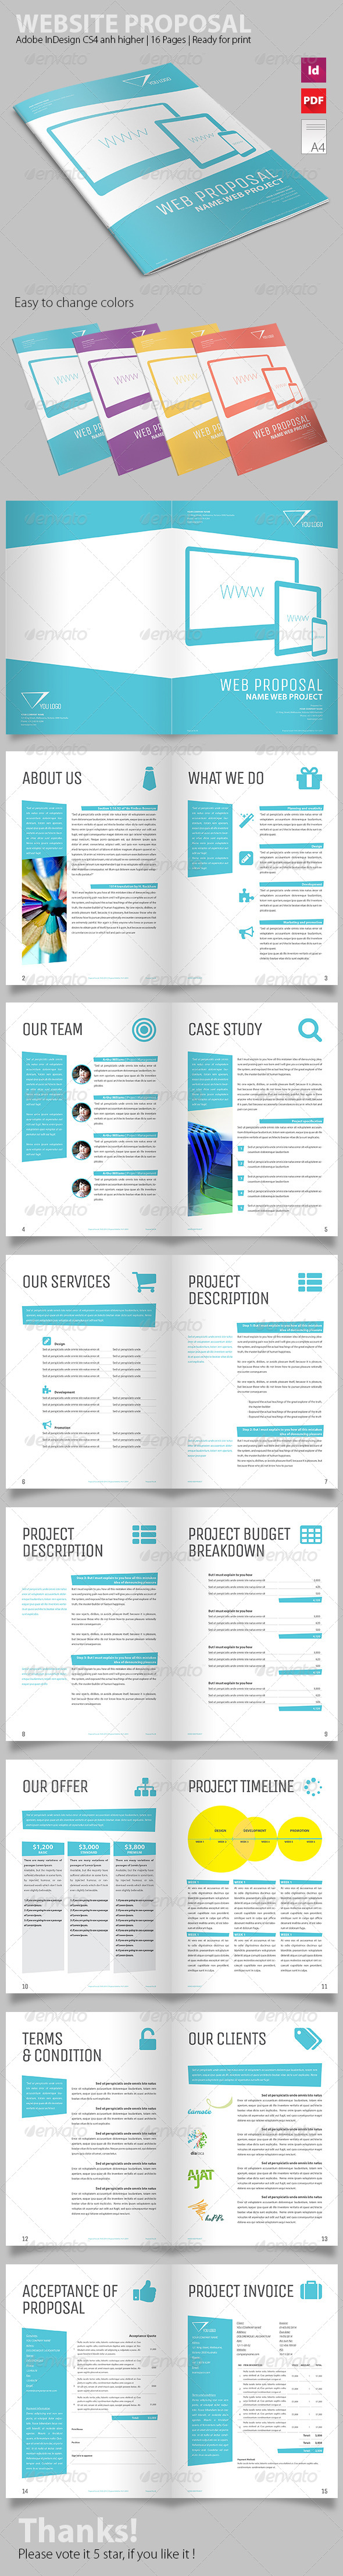 Triangle Proposal Template - Proposals & Invoices Stationery